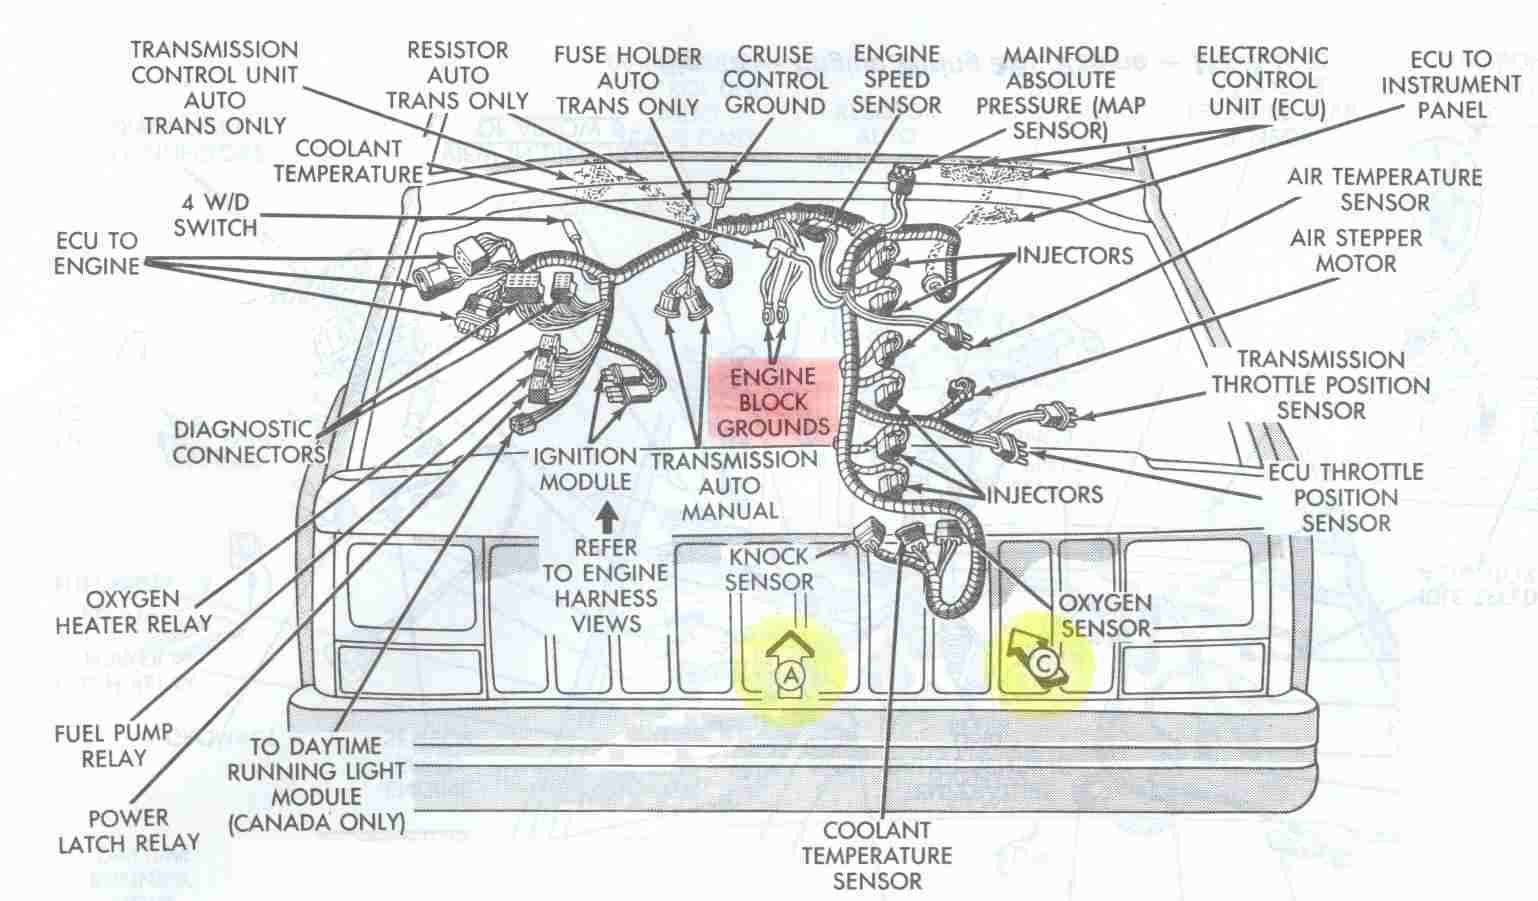 ab0134a7d9e021431187af597eb4aeca engine bay schematic showing major electrical ground points for Jeep Cherokee Sport Wiring Diagram at bayanpartner.co